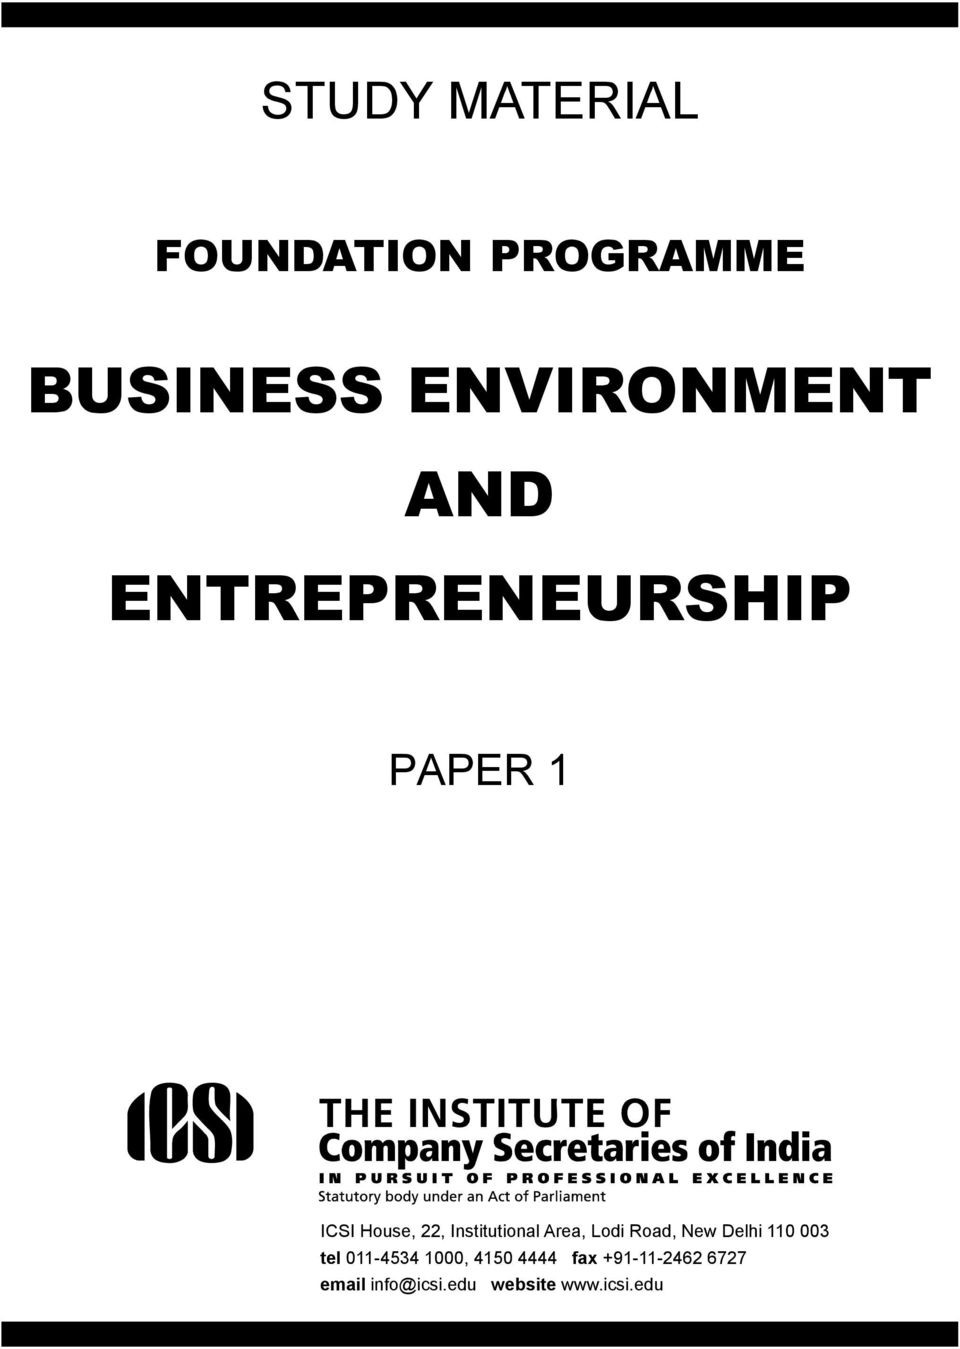 rural entrepreneurship research papers Ess student papers sathiabama/women empowerment  research scholar,  department of political science and development administration, gandhigram.